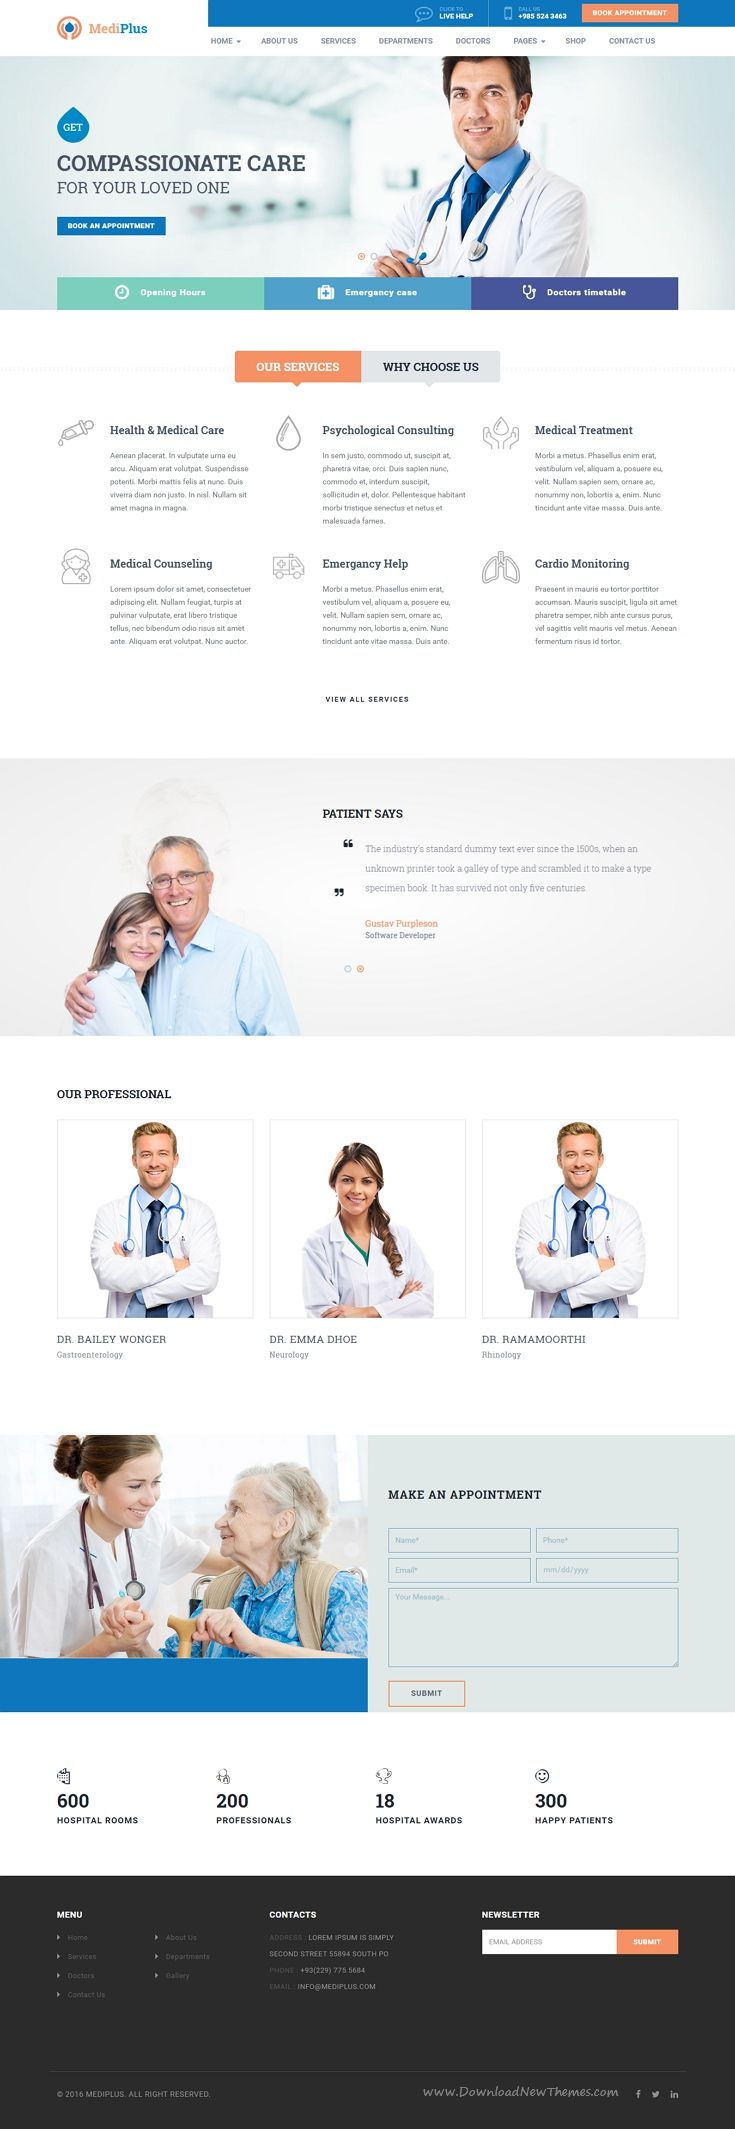 MediPlus is a responsive WordPress themes for hospital, clinic, #doctor, #dentist, surgeon, gynecologist, research center, #health-care, pharmacies and other health and medical related organizations #website.